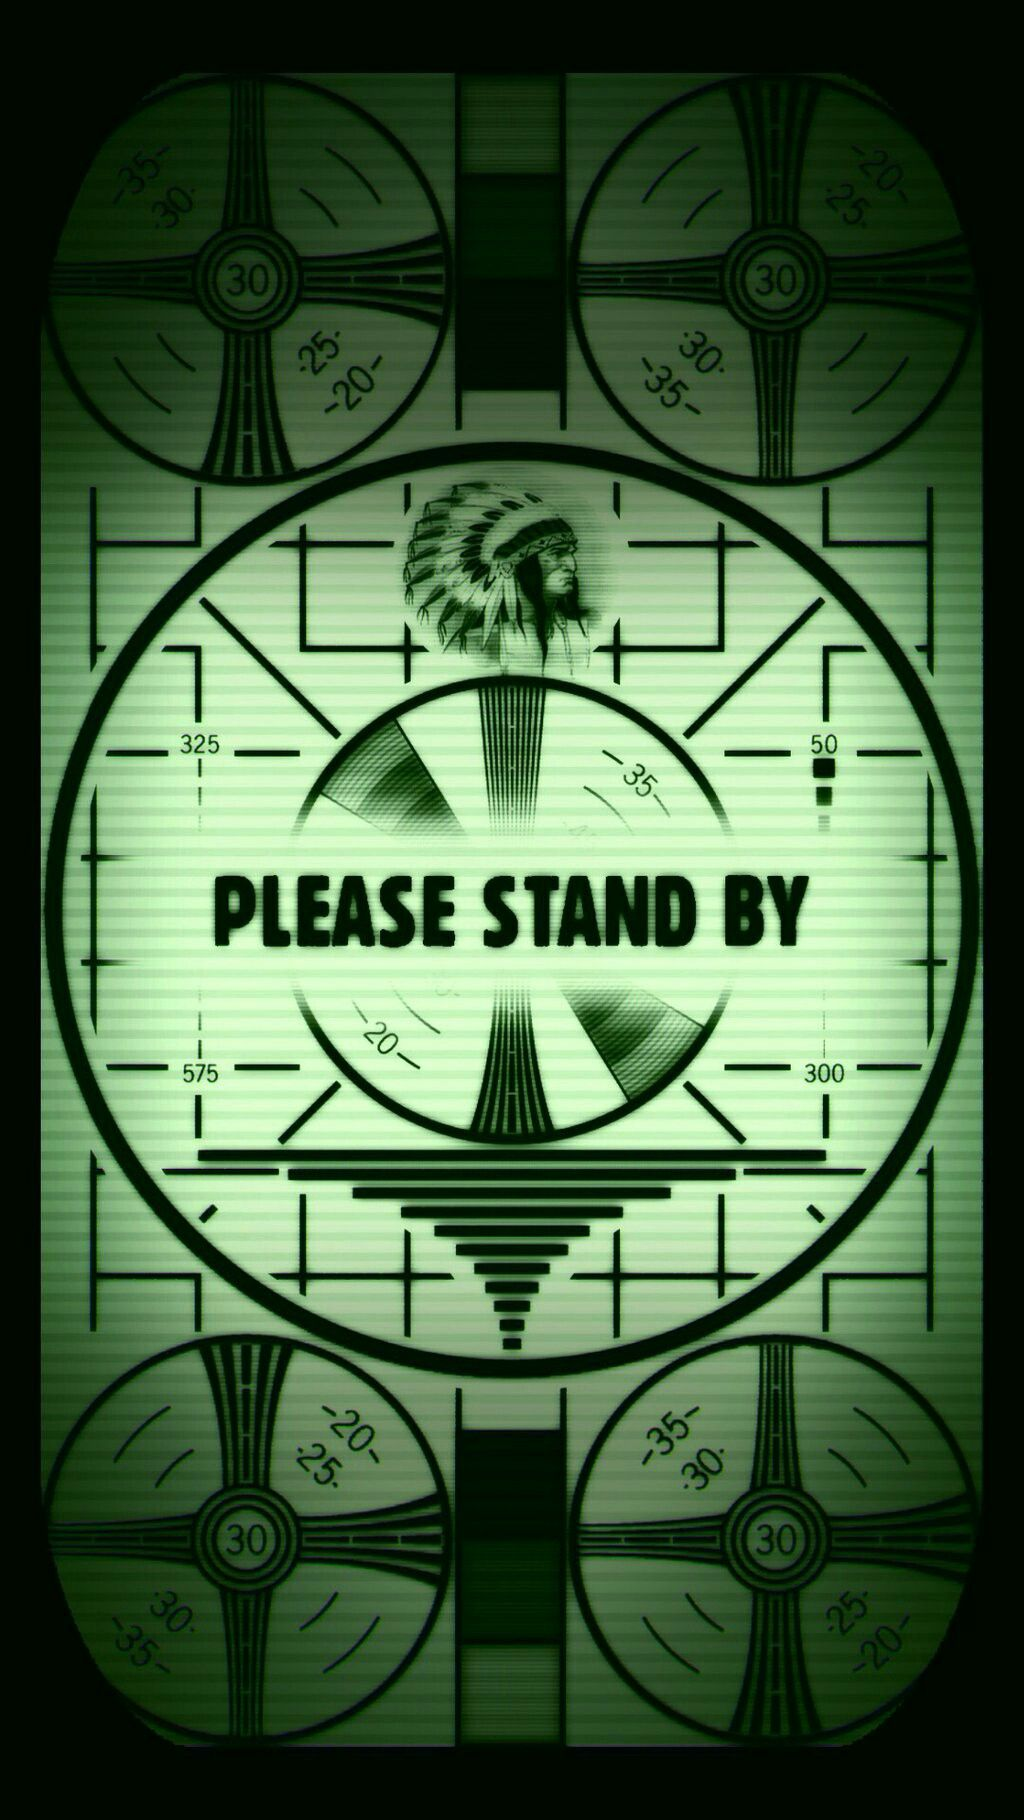 Fallout Please Stand By Screen Fallout Wallpaper Fallout Art Fallout Fan Art